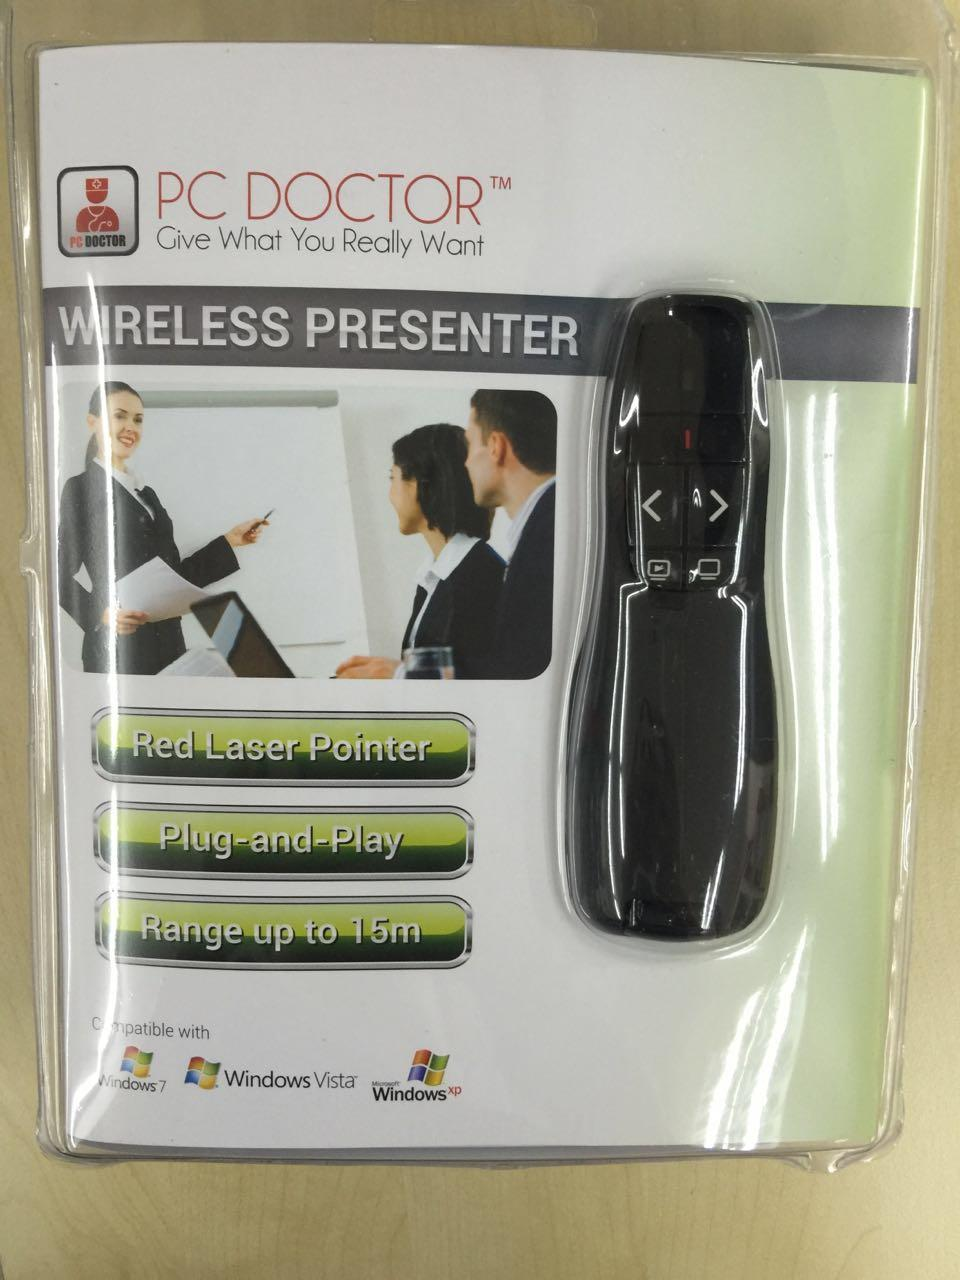 PC DOCTOR RED LASER POINTER 2.4GHZ CORDLESS PRESENTER, PP06